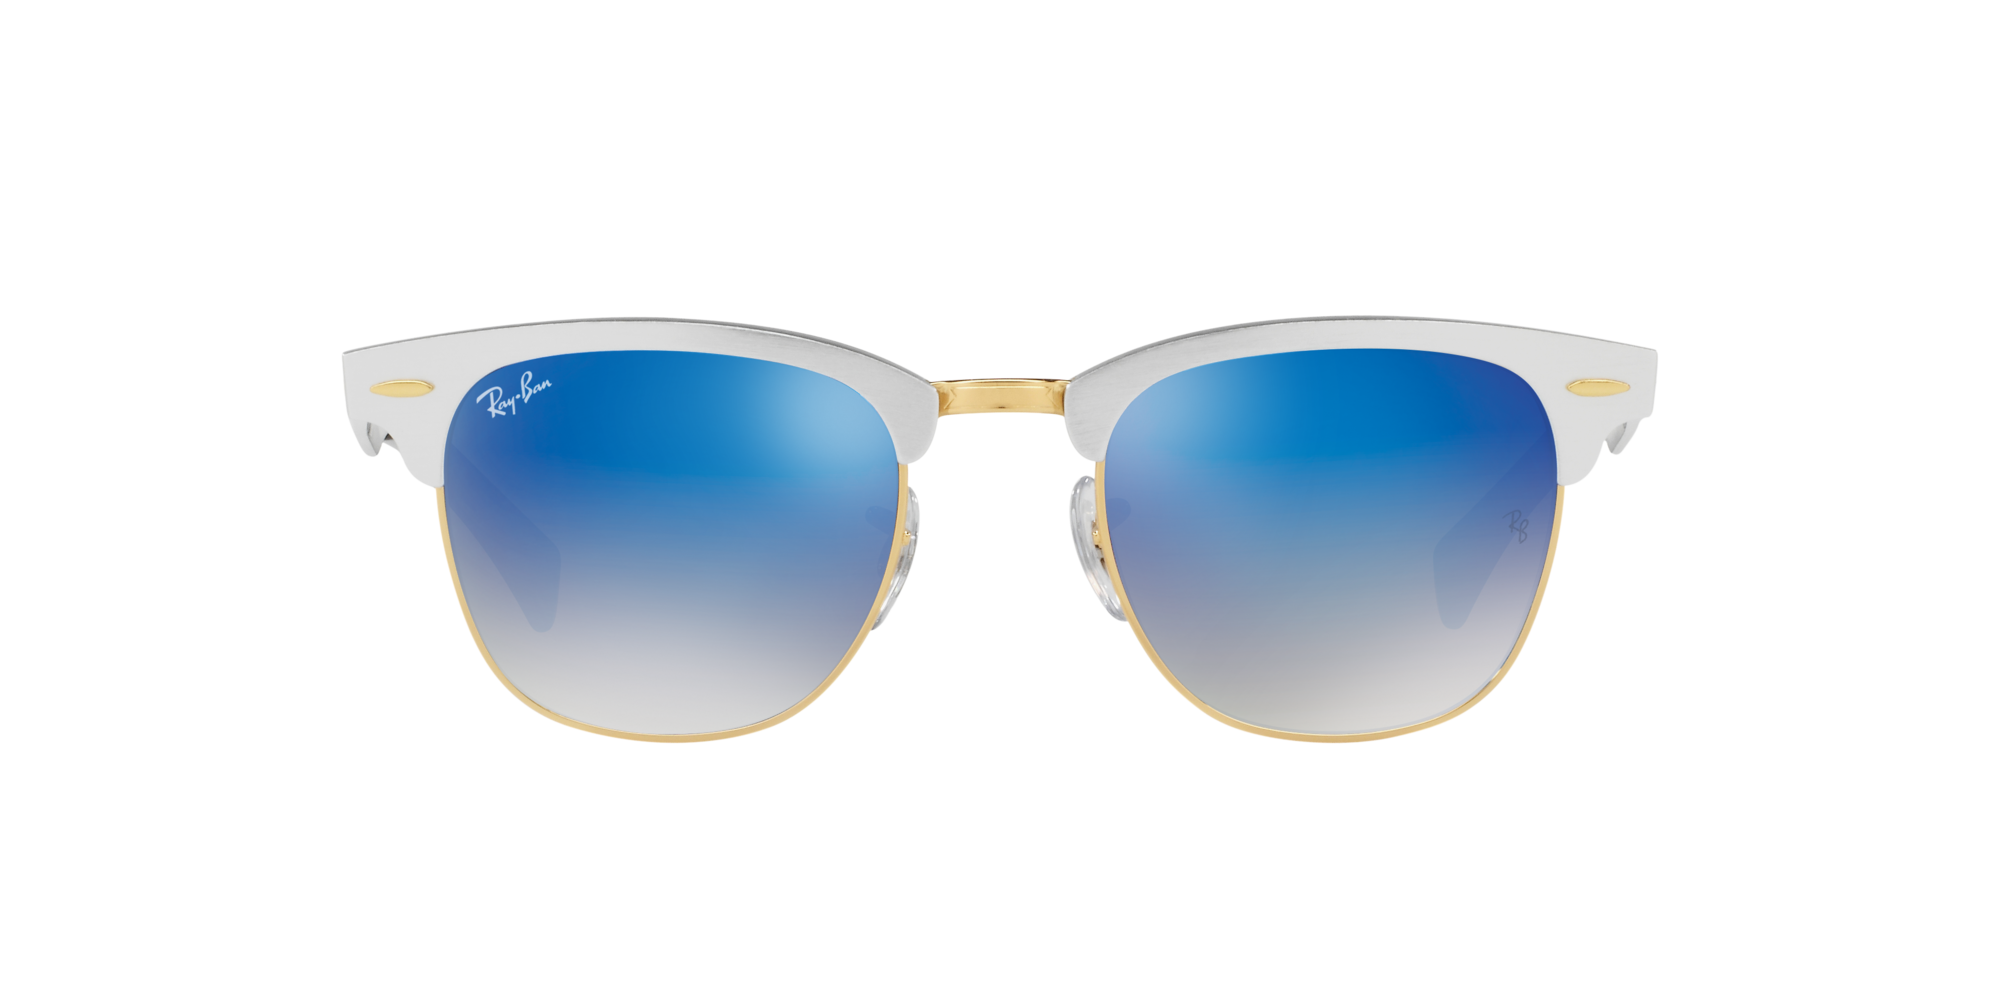 073c36e6b5 ... RAY-BAN CLUBMASTER RB 3507 137/7Q. 360° Product View 360° Product View  ...